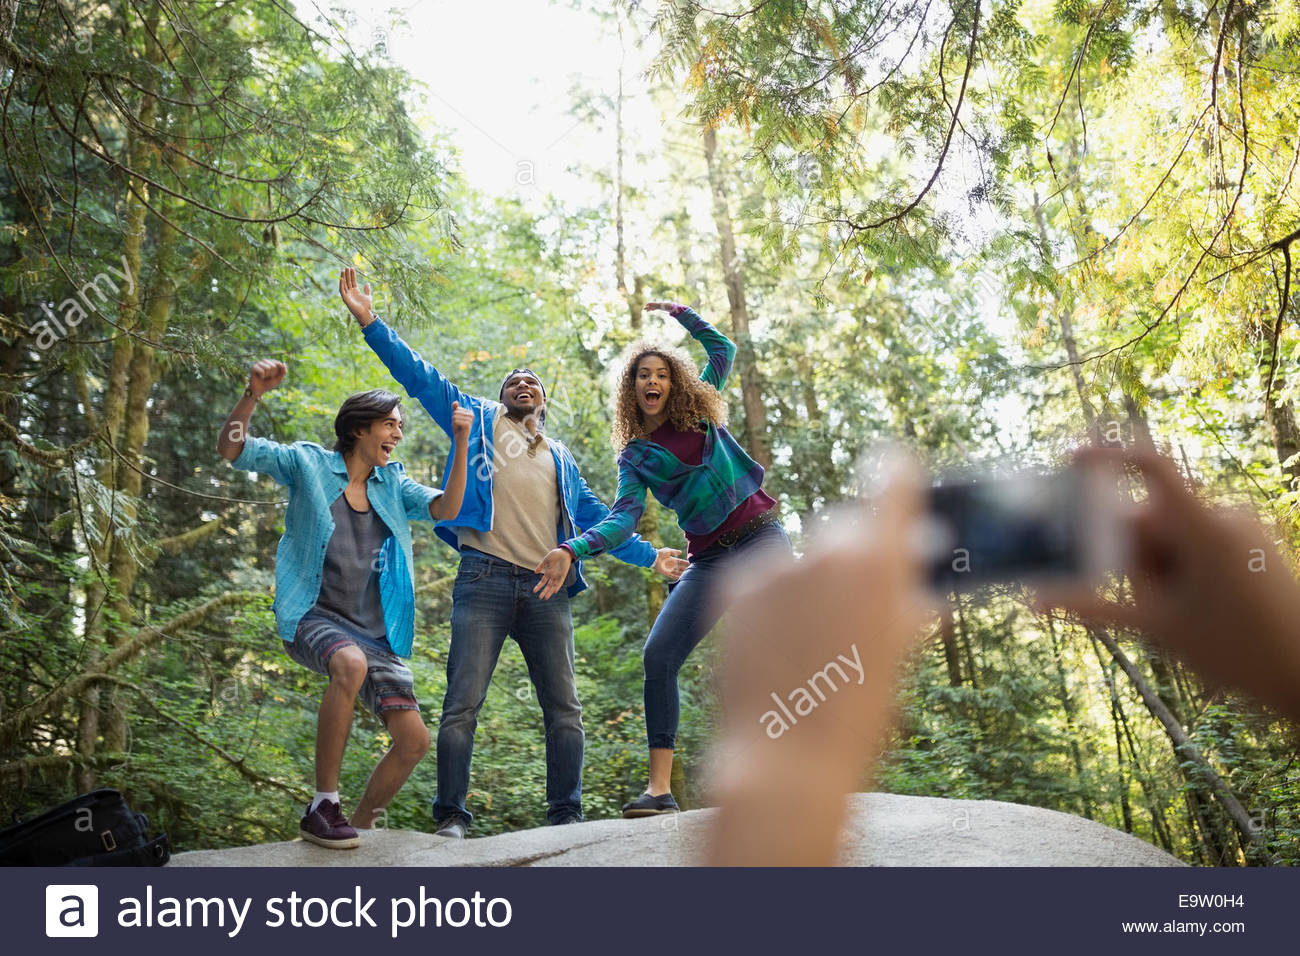 Friends playfully posing for photograph in woods - Stock Image